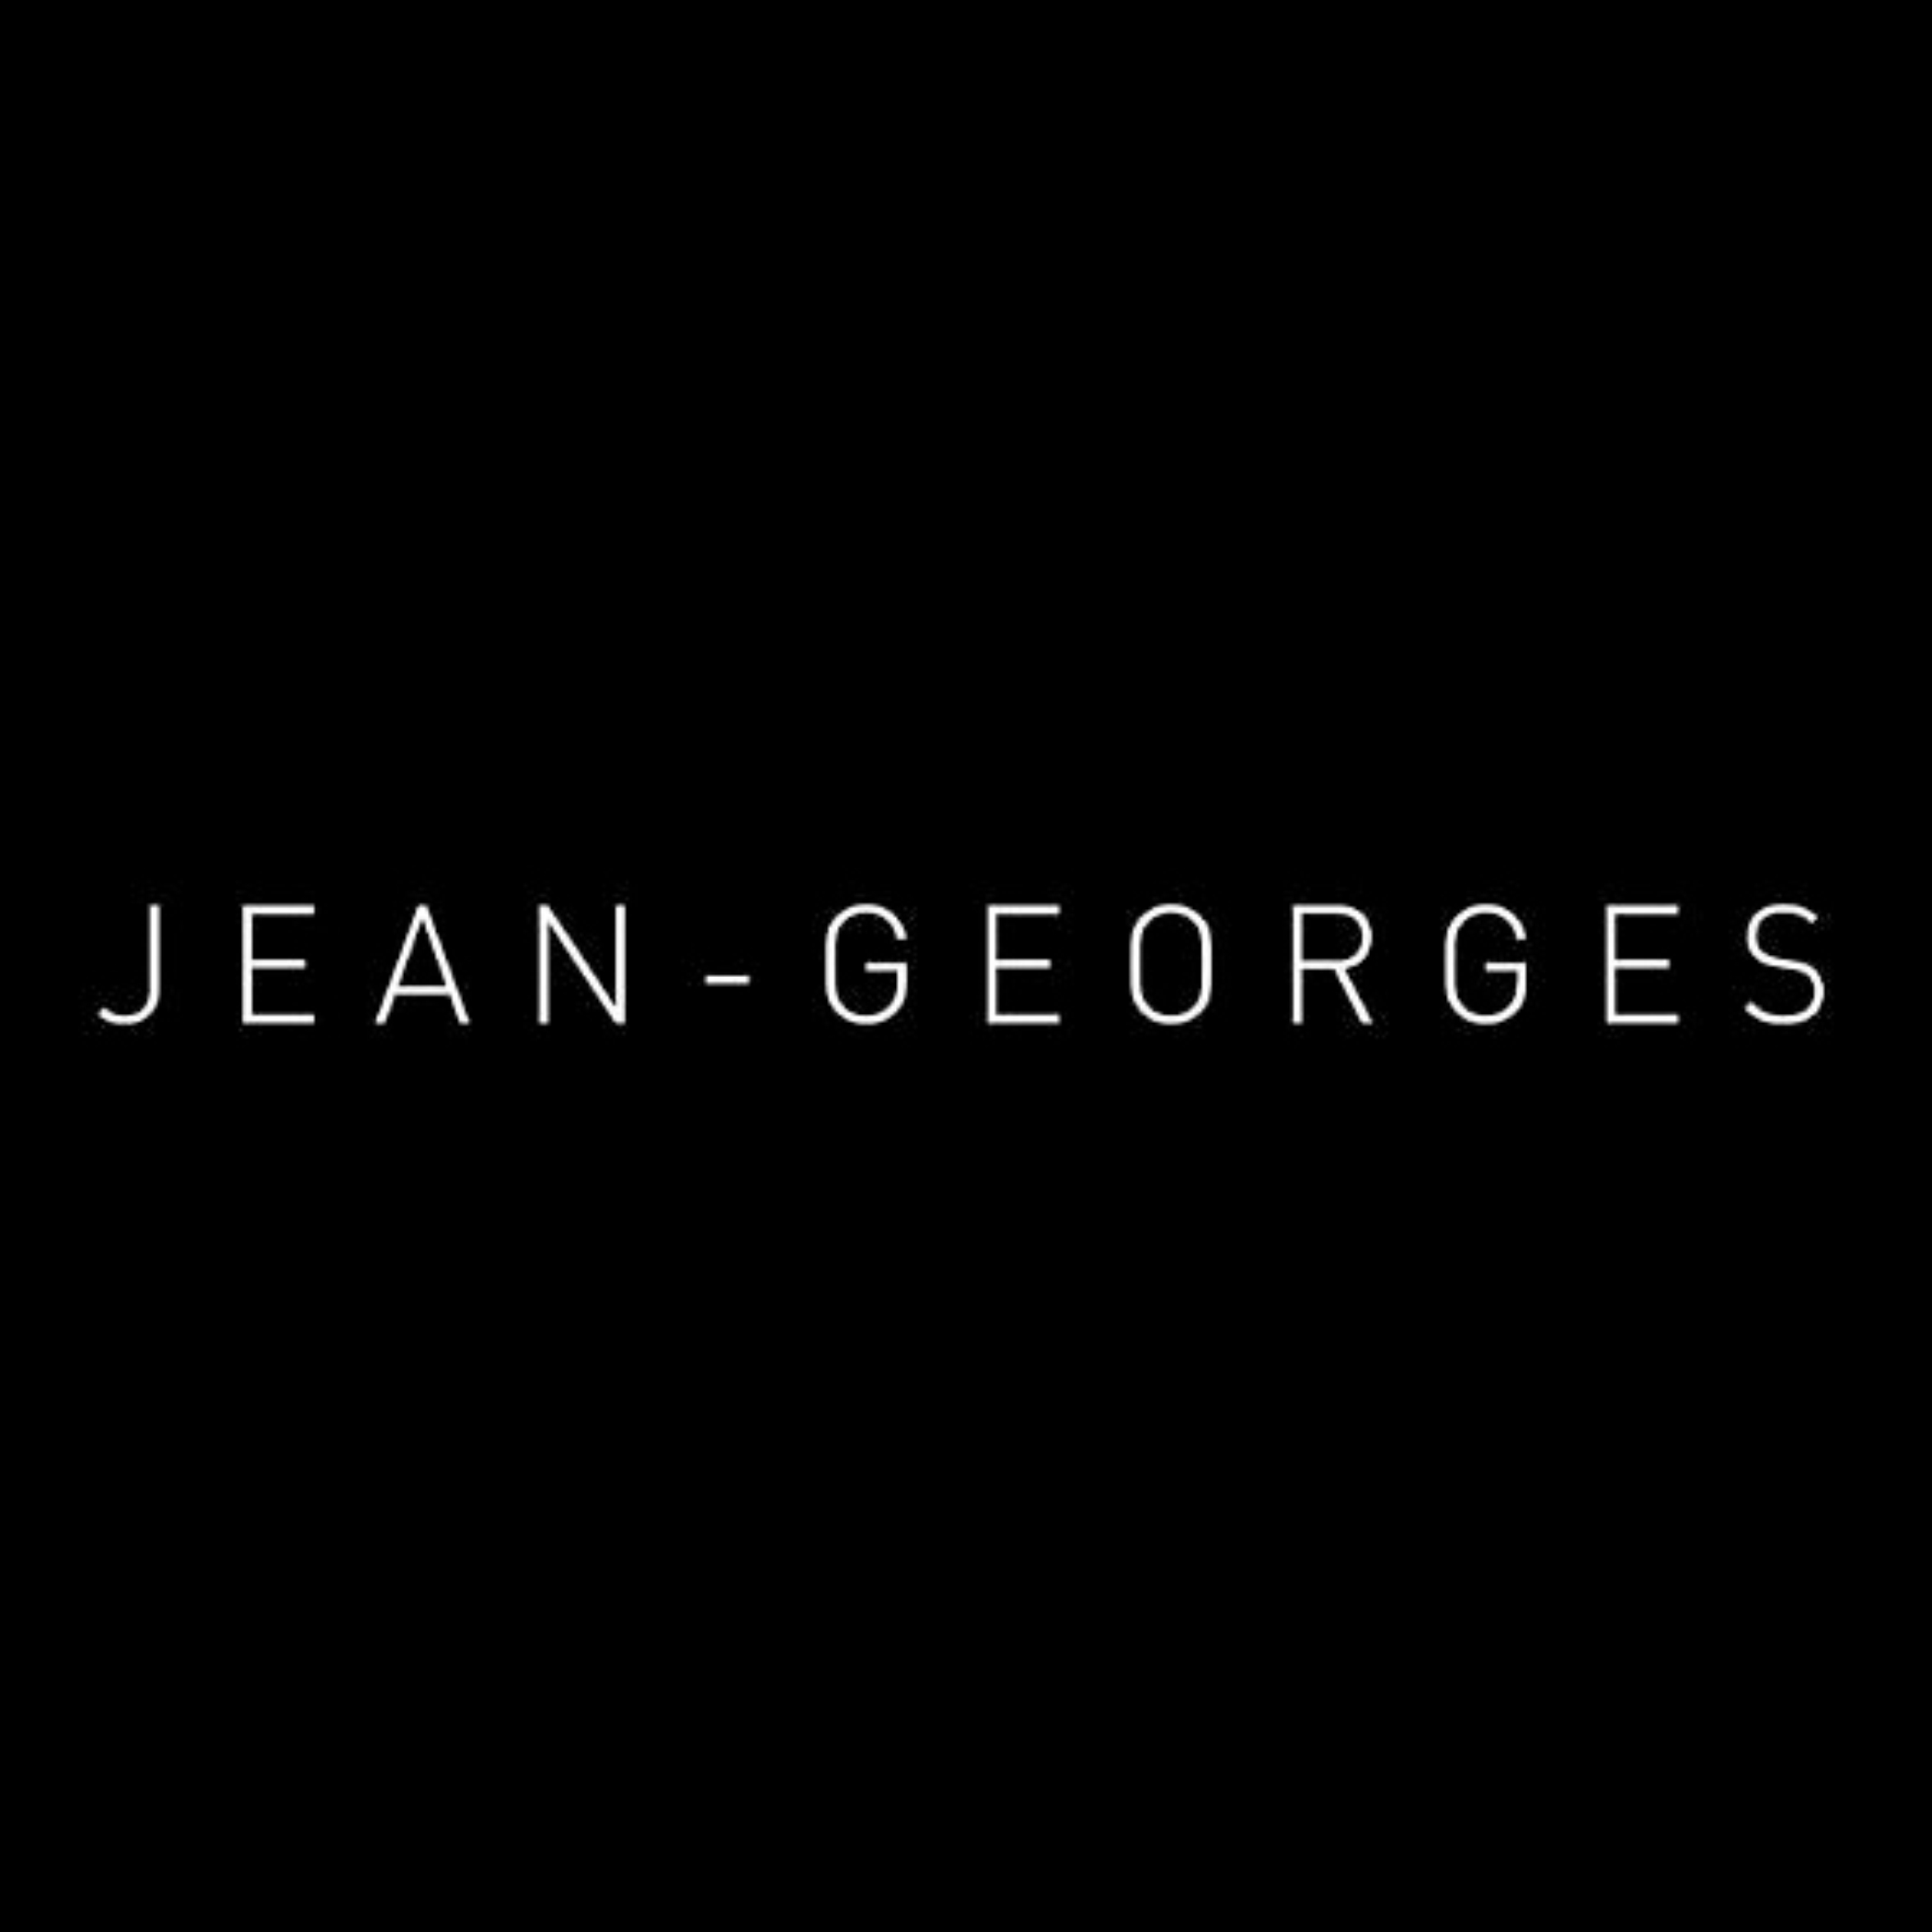 kelsy-zimba-collections-zform-jean-georges.jpg